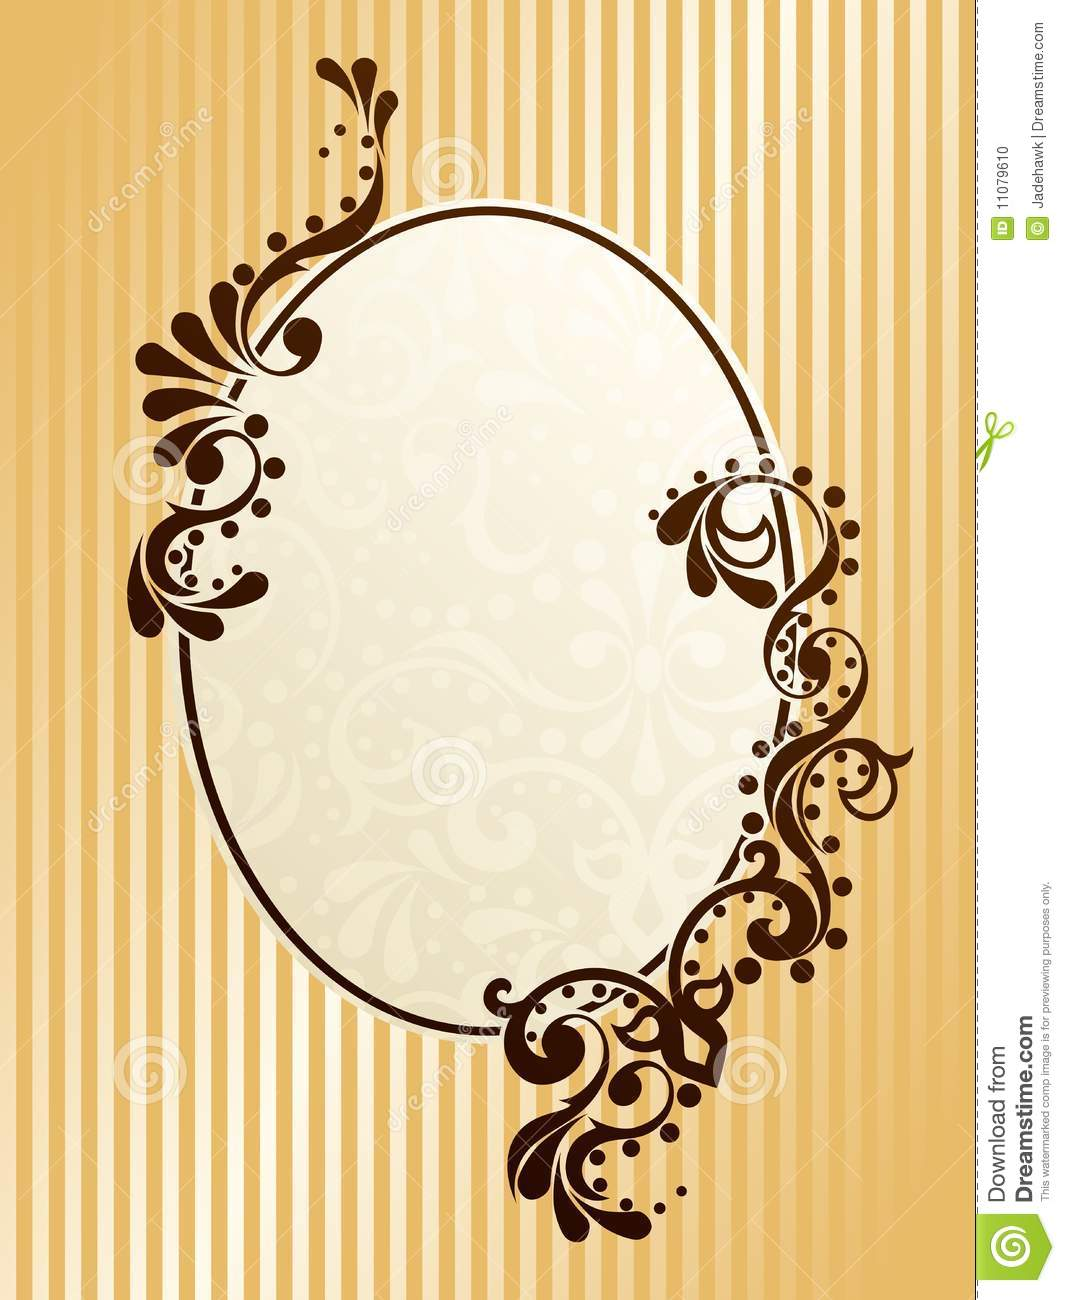 oval vintage sepia frame stock vector illustration of. Black Bedroom Furniture Sets. Home Design Ideas